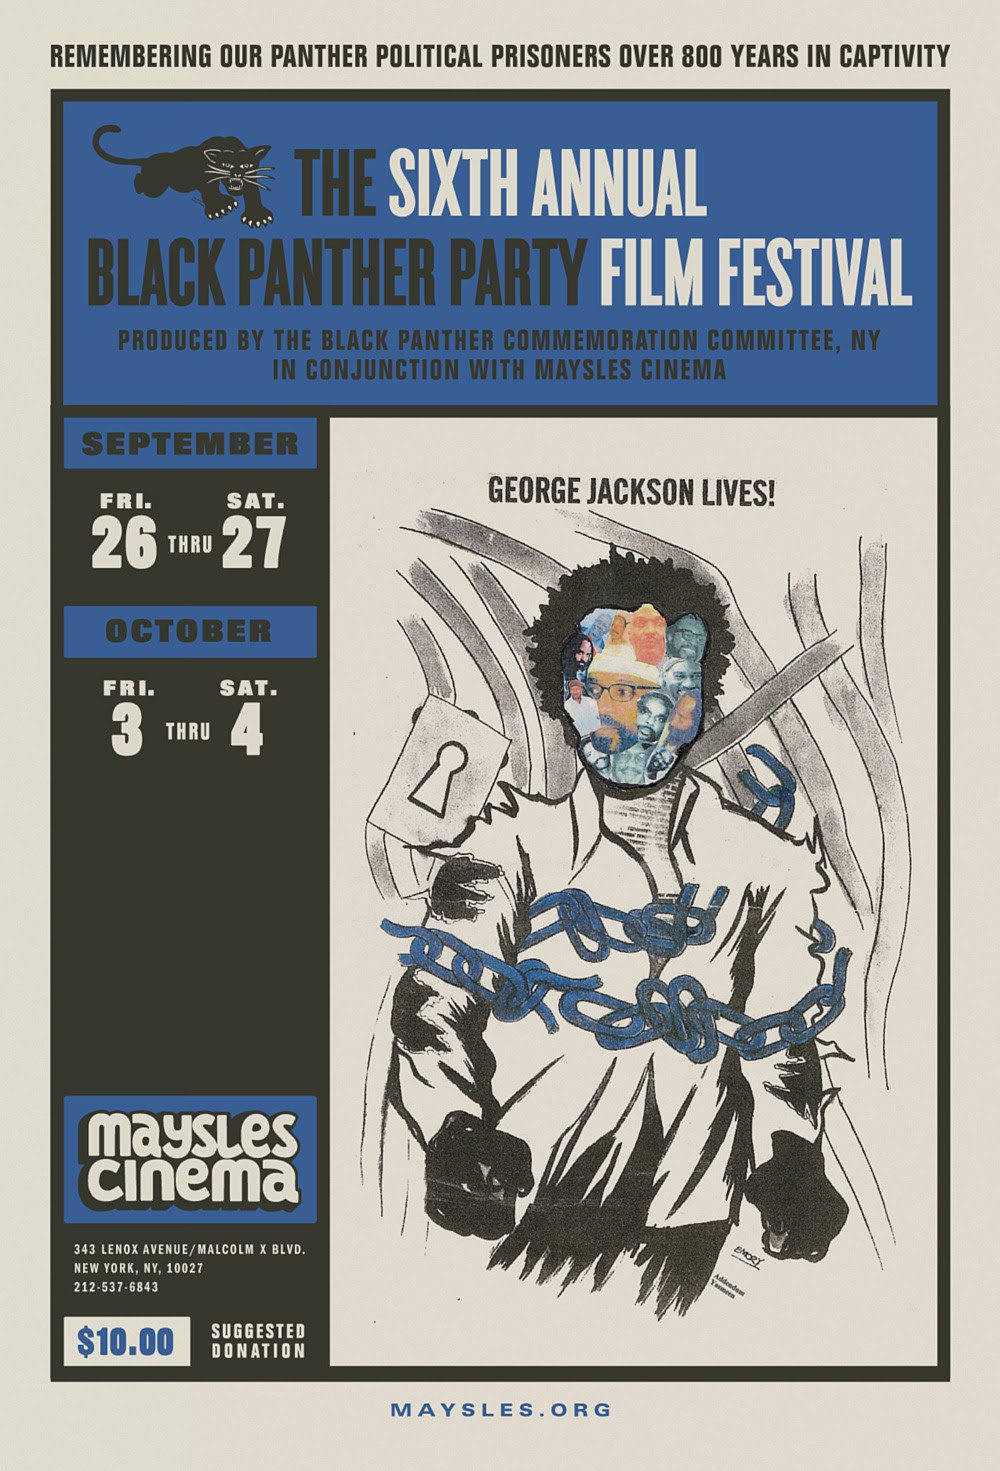 The Sixth Annual Black Panther Party Film Festival